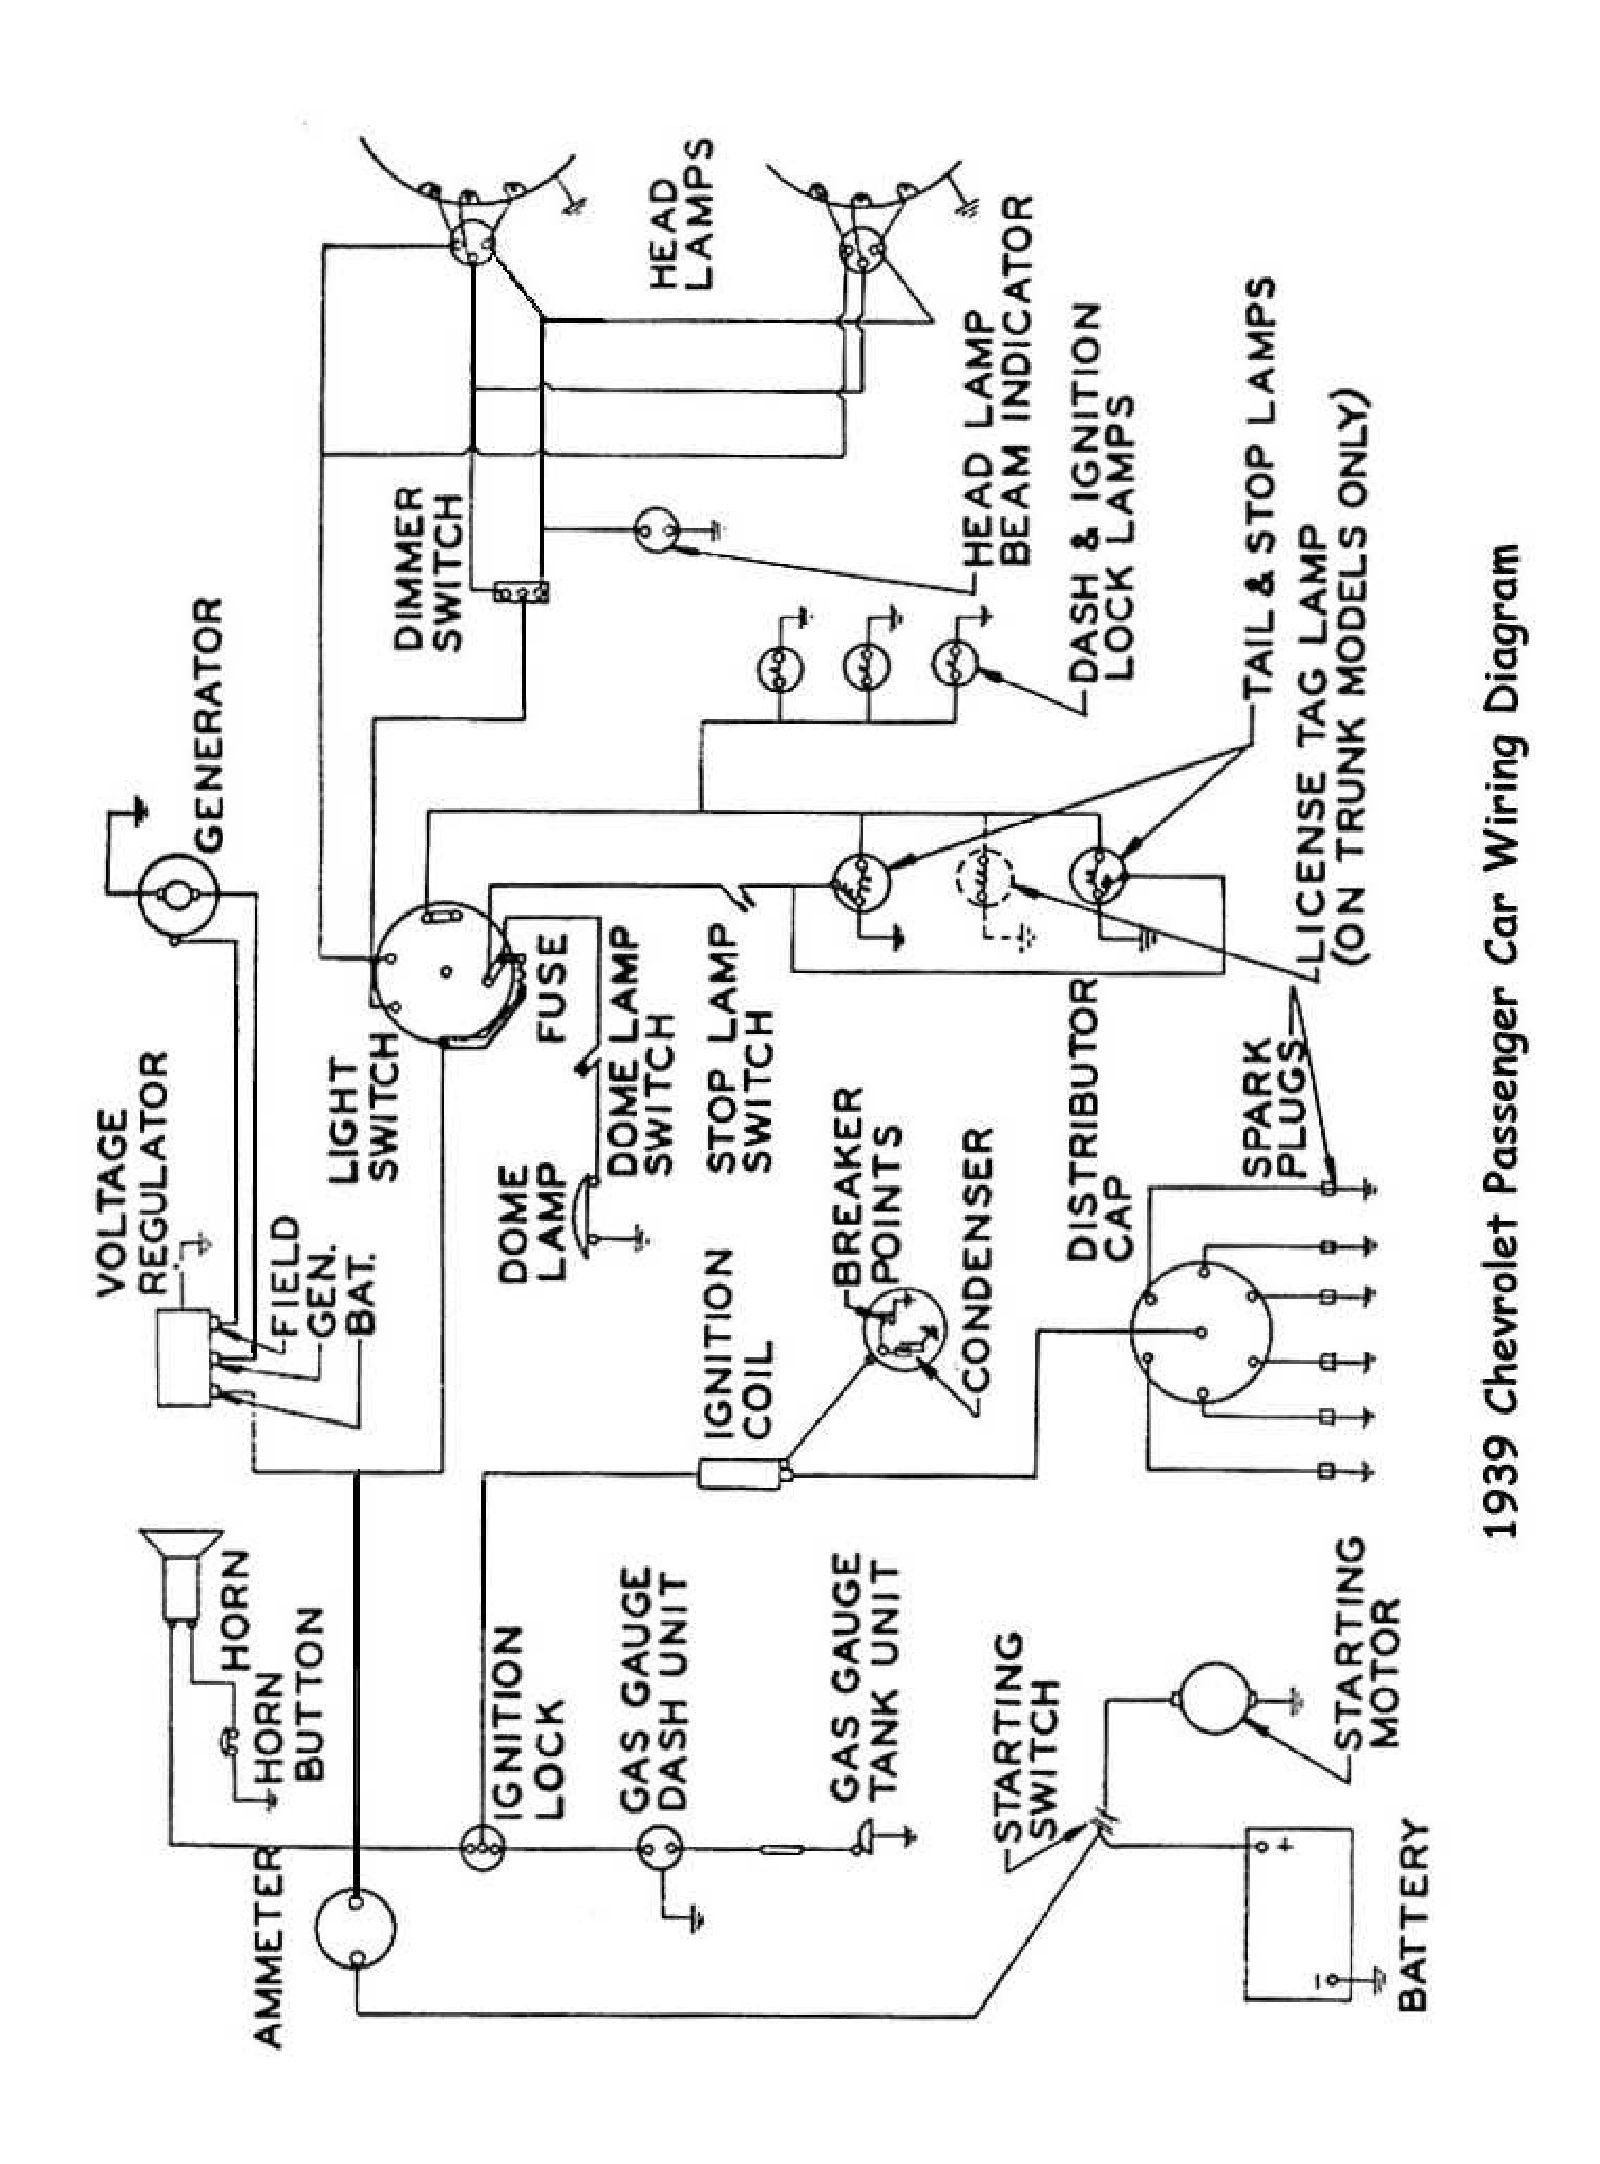 car wiring diagram software free download wiring diagram xwiaw rh xwiaw us Color Wiring Diagram Label Boat Wiring Diagrams Schematics